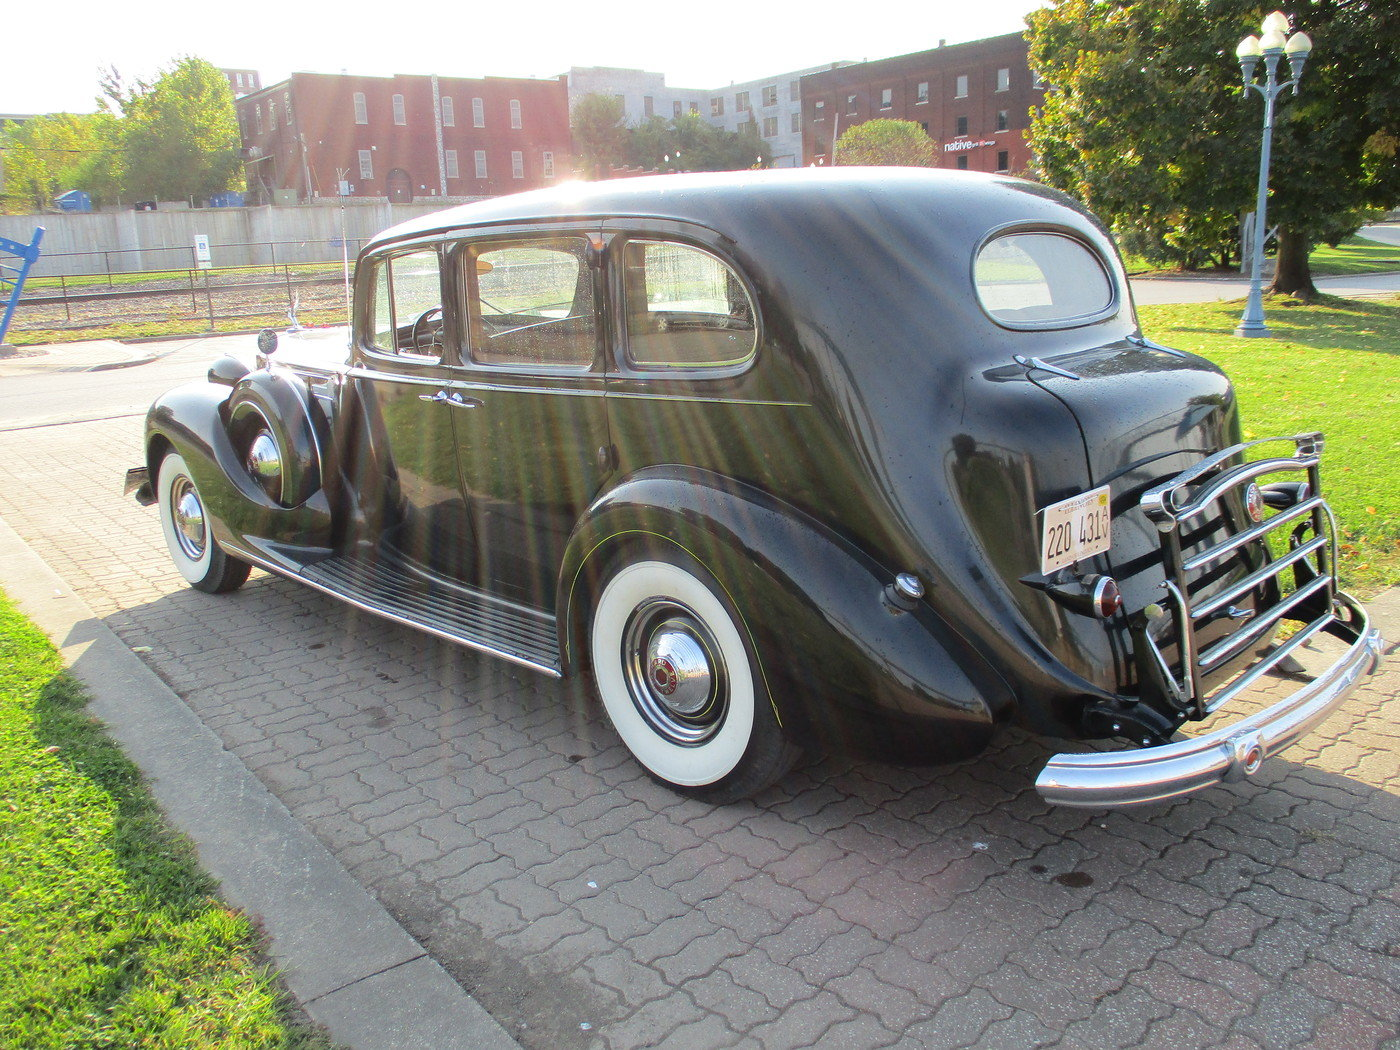 1939 Packard Model 1708 12 Cylinder Limousine For Sale (picture 11 of 12)